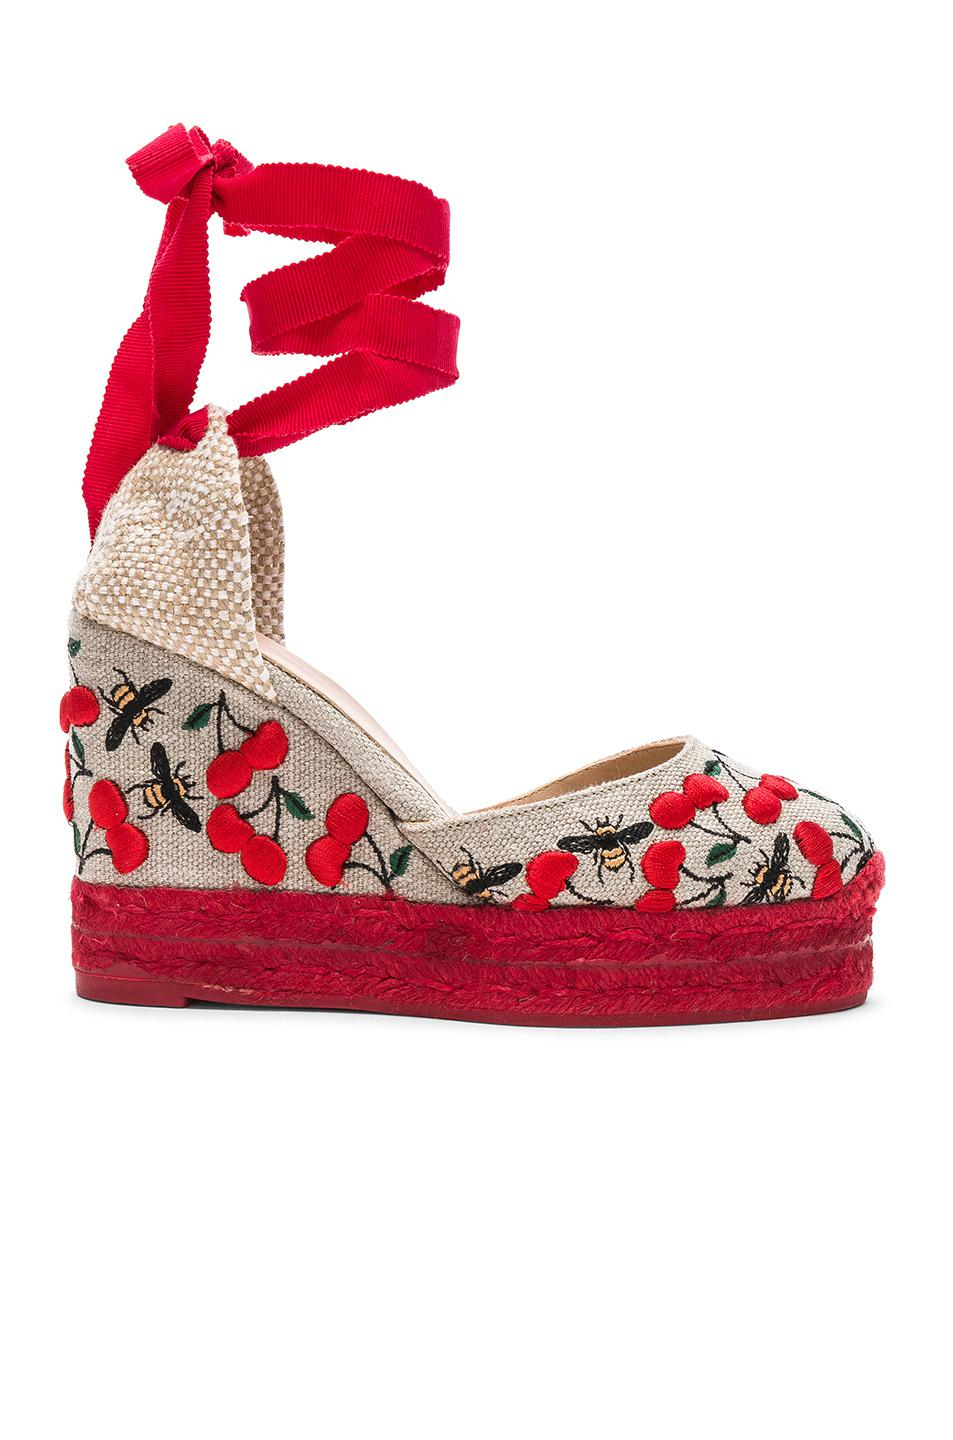 Embroidered Canvas Carina Espadrilles in Red Castaner 2dwojQnSh